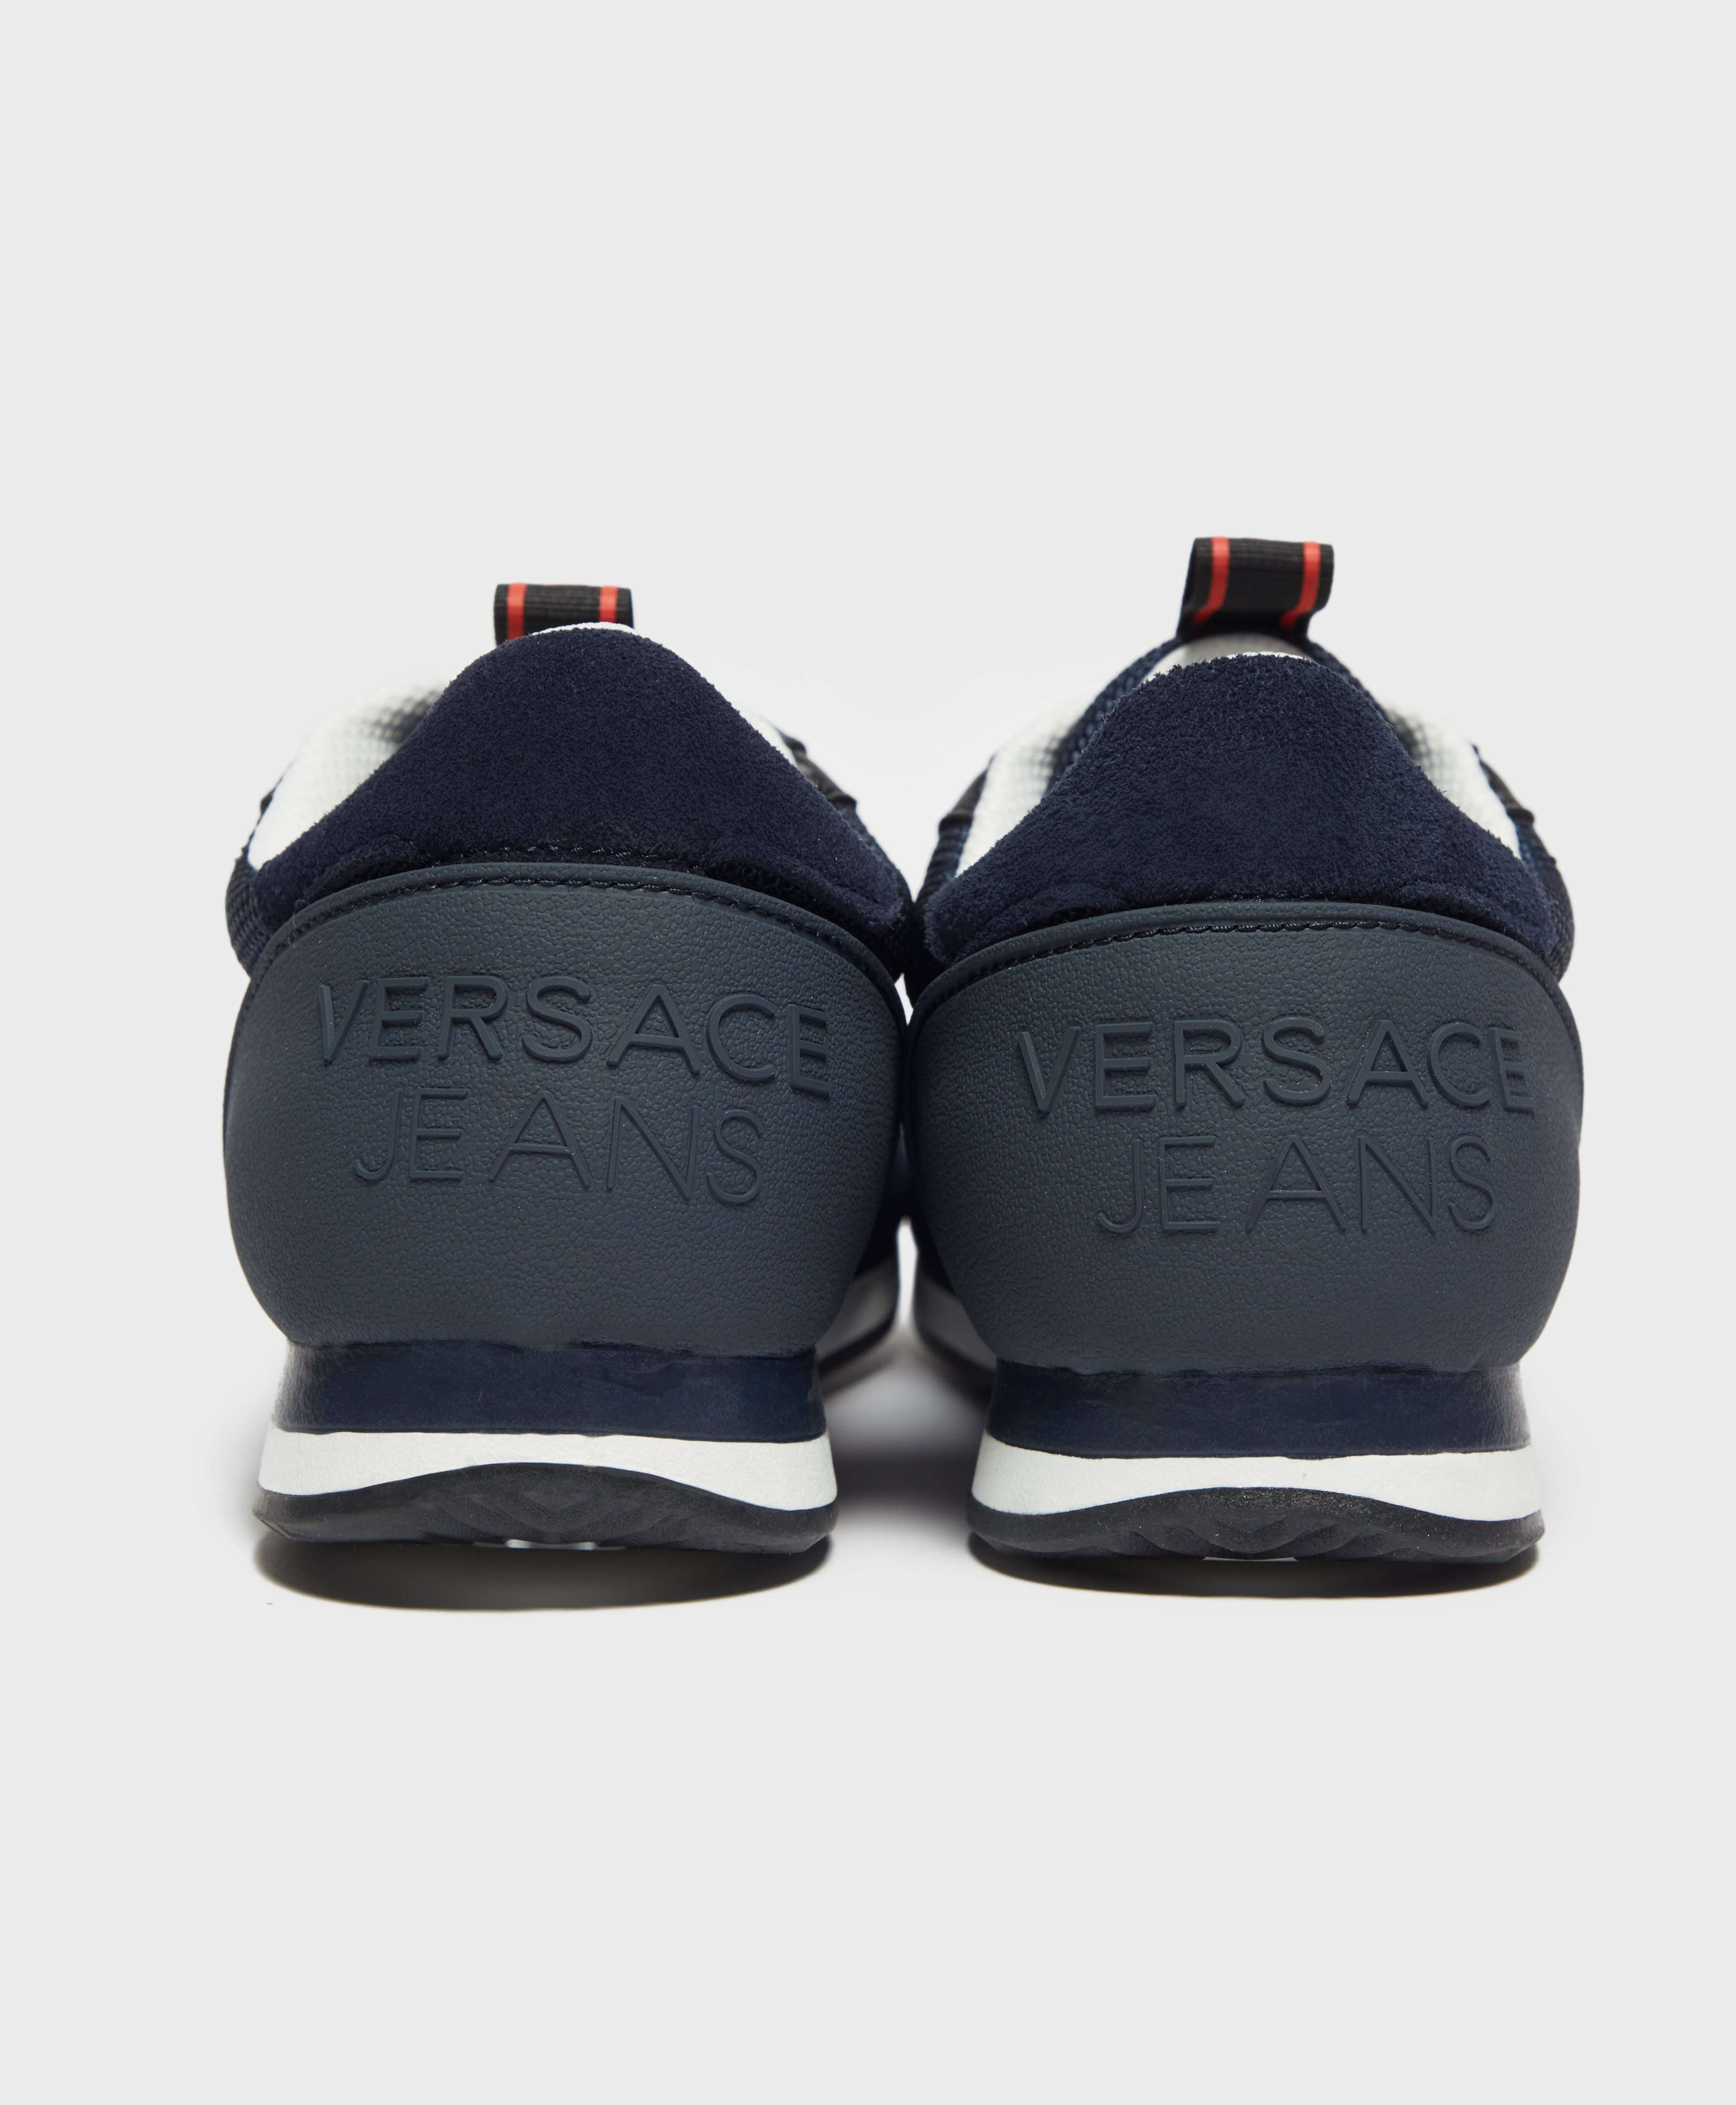 Versace Jeans New Runner